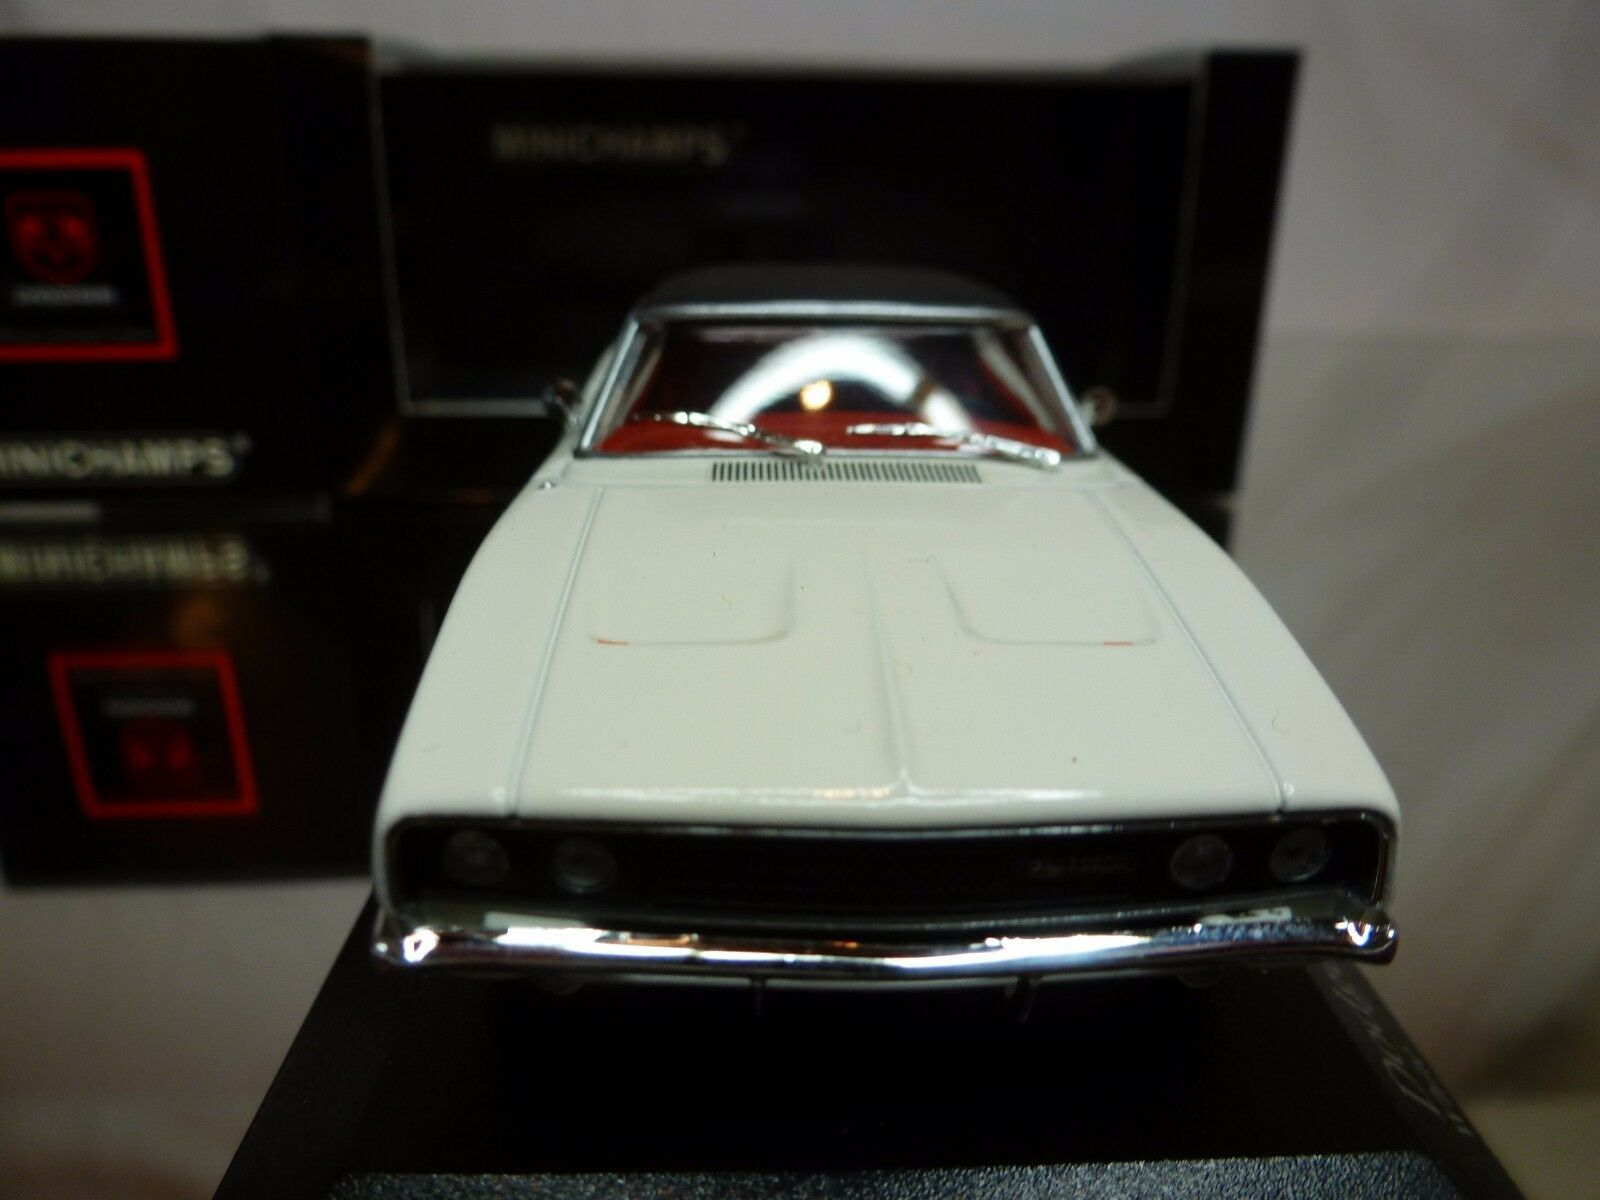 MINICHAMPS DODGE CHARGER R T HARDTOP COUPE 1968 - WHITE WHITE WHITE 1 43 - EXCELLENT IN BOX 51515f